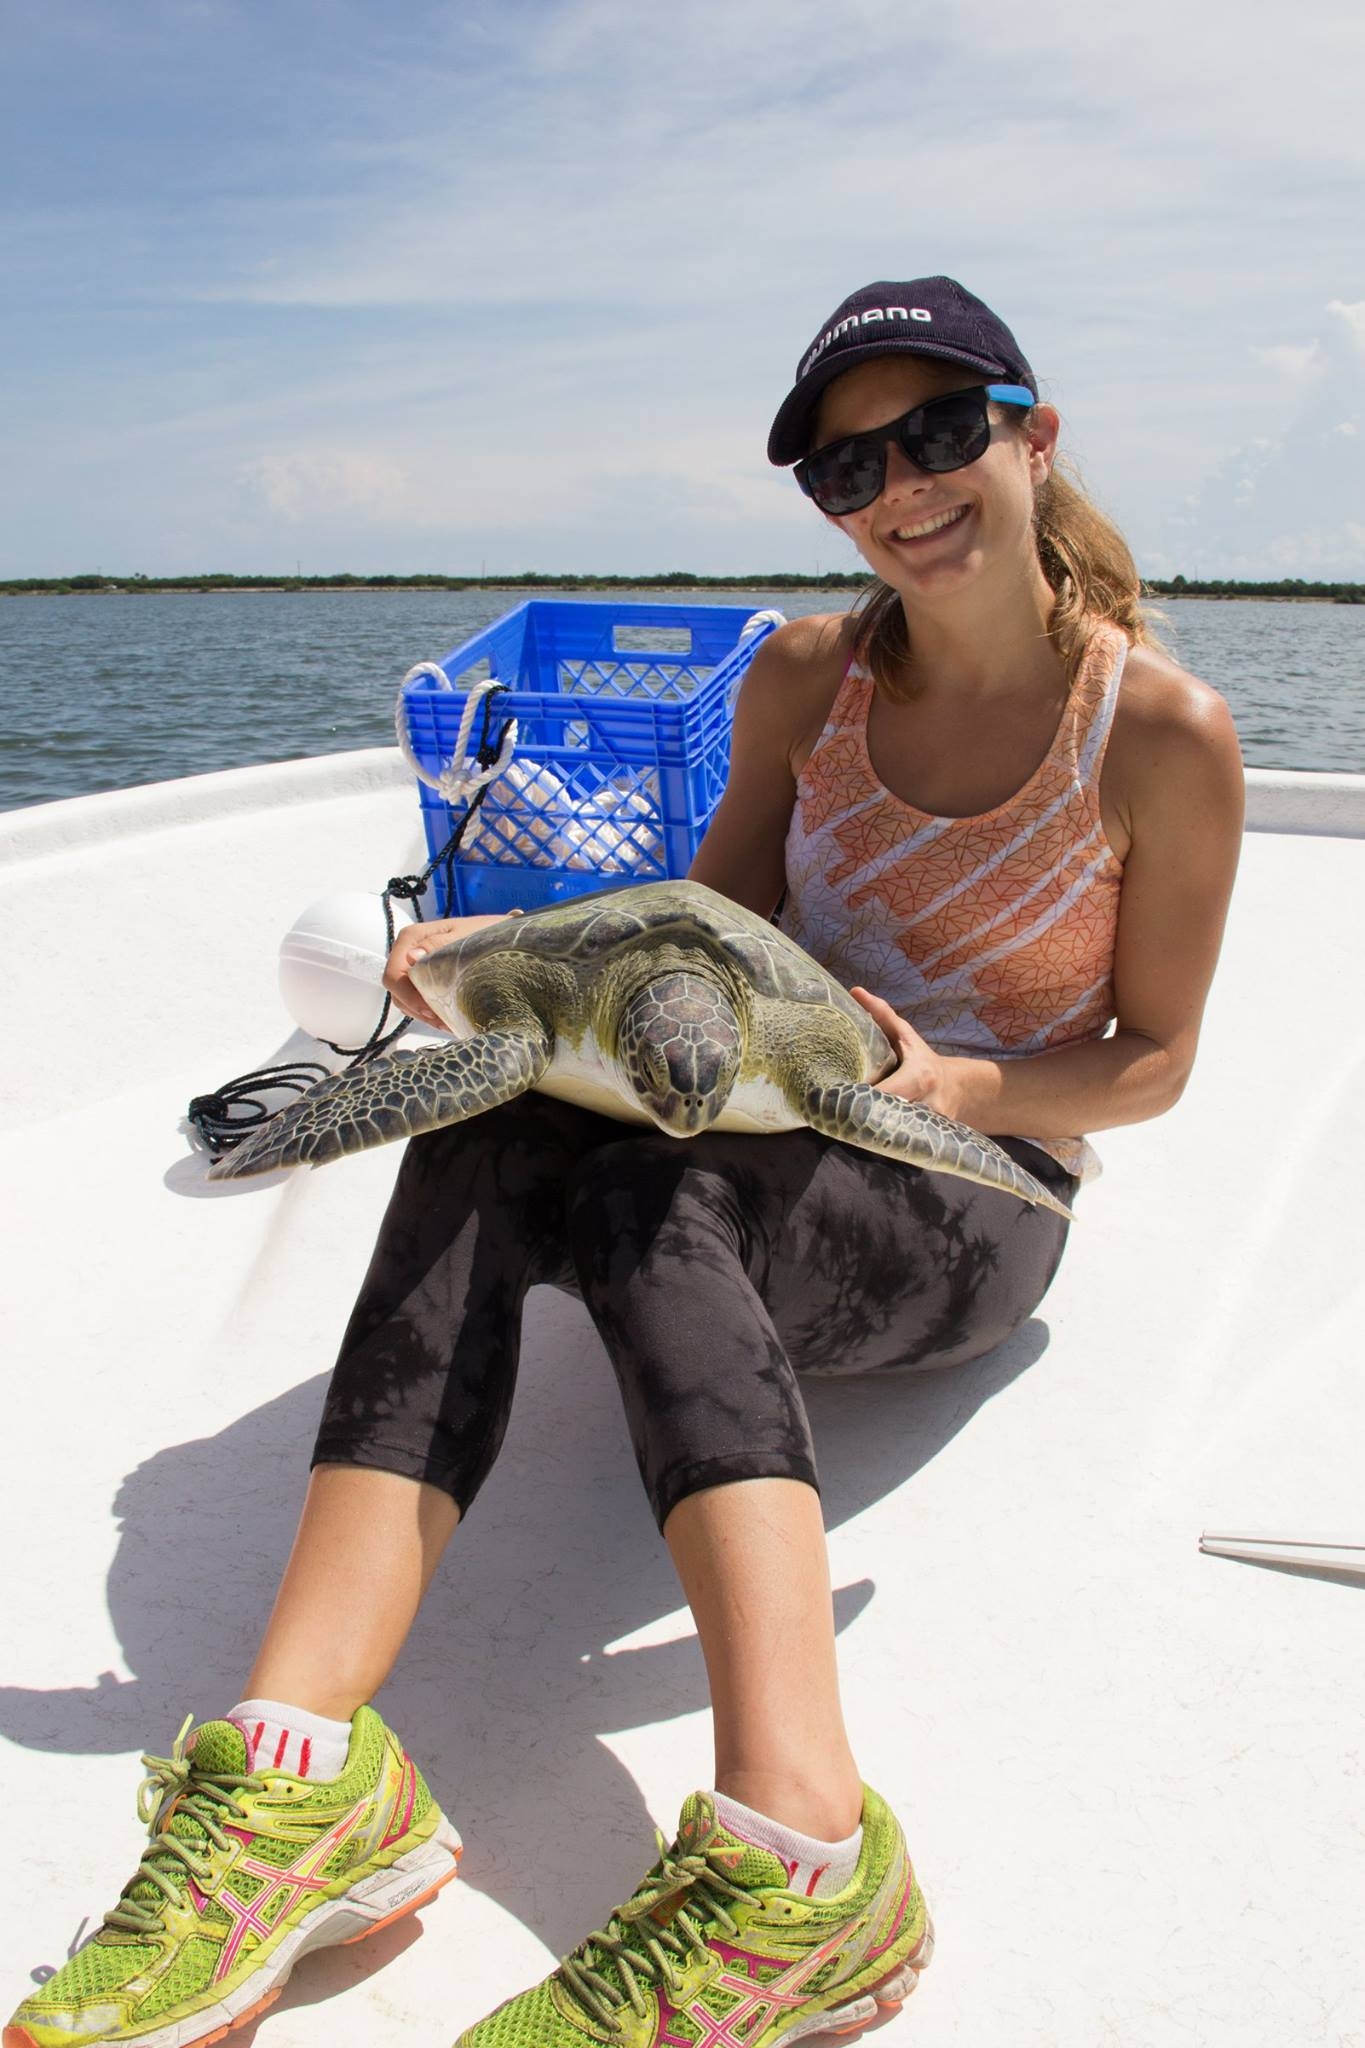 Feed image for Biologist and Genetics Expert Team Up to Solve Turtle Health Mystery